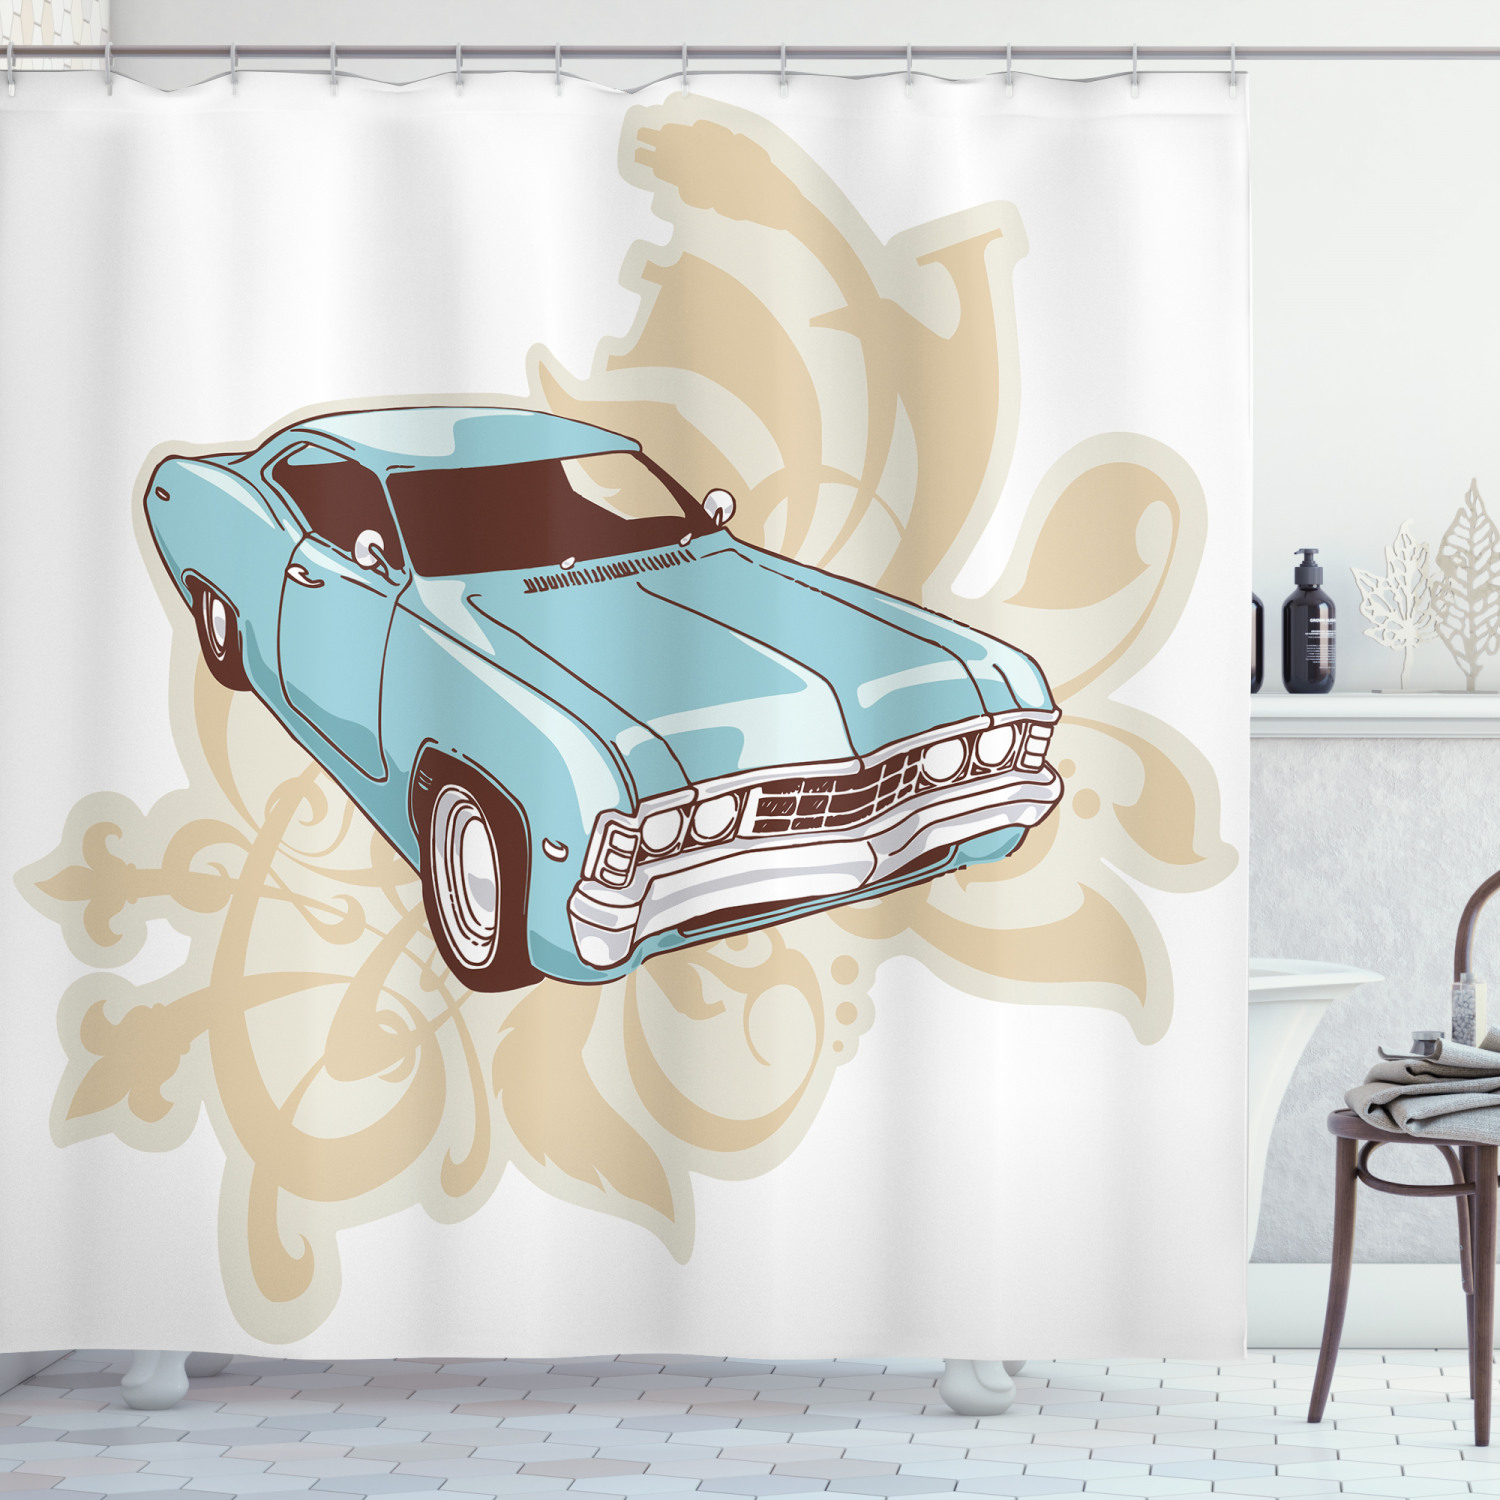 cars shower curtain classical sport car with abstract design in the background retro style vehicle fabric bathroom set with hooks 69w x 84l inches